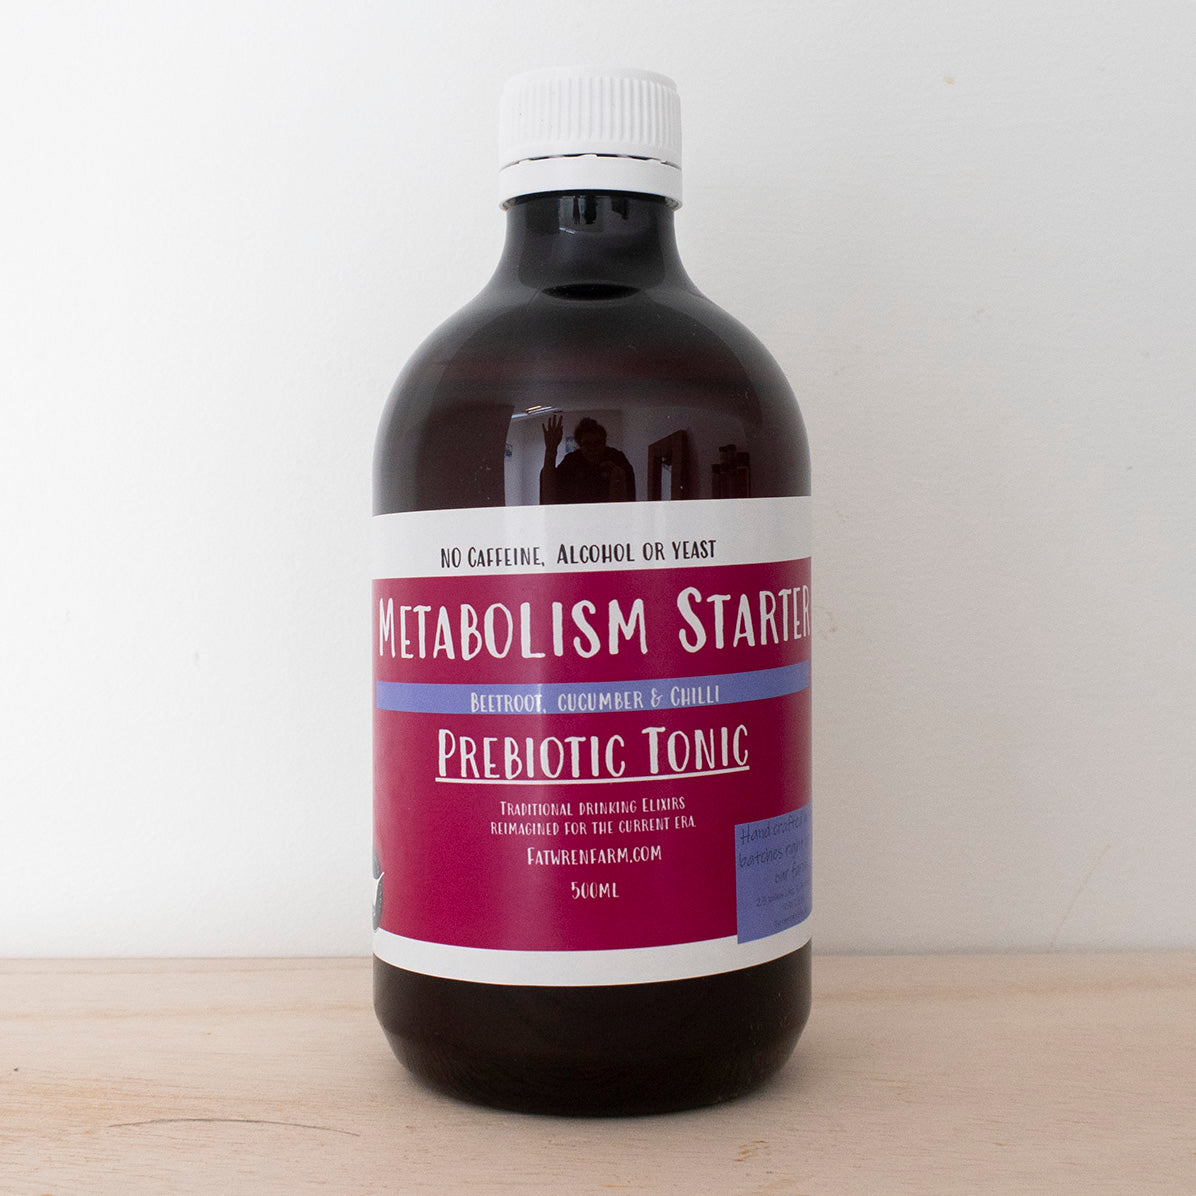 The Metabolism Starter Prebiotic Tonic